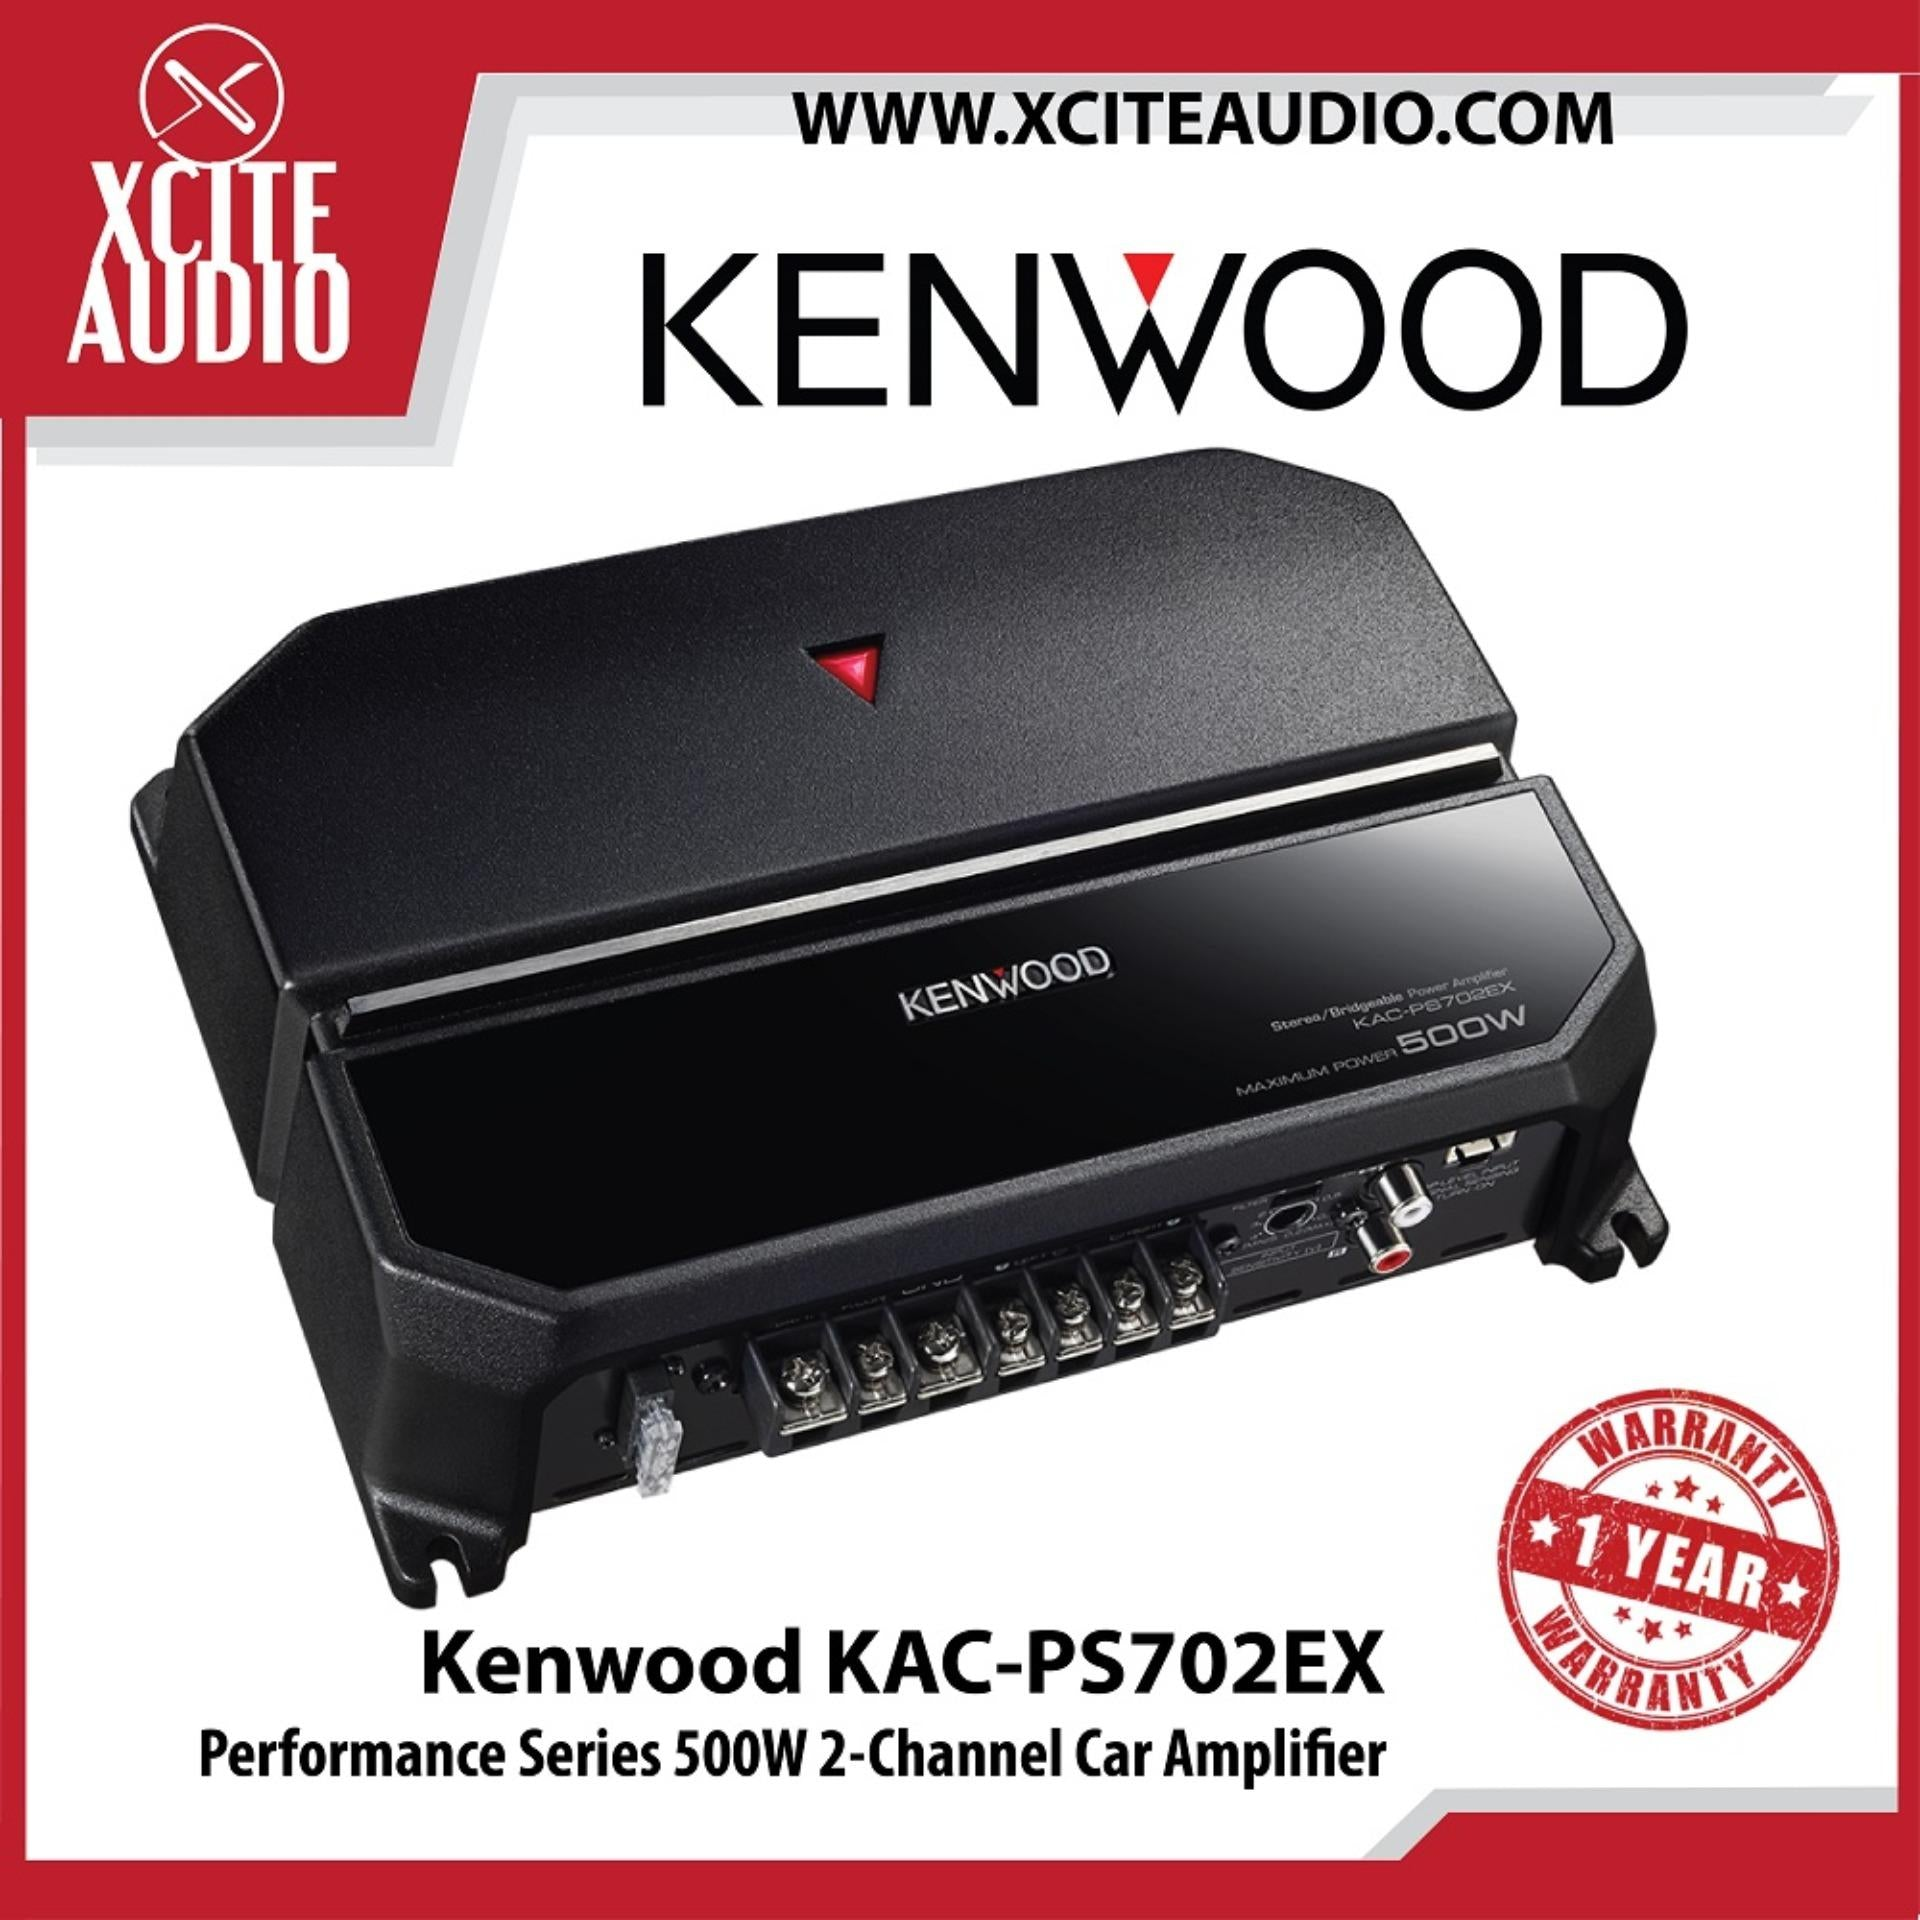 Kenwood KAC-PS702EX Performance Series 500W 2-Channel Car Amplifier